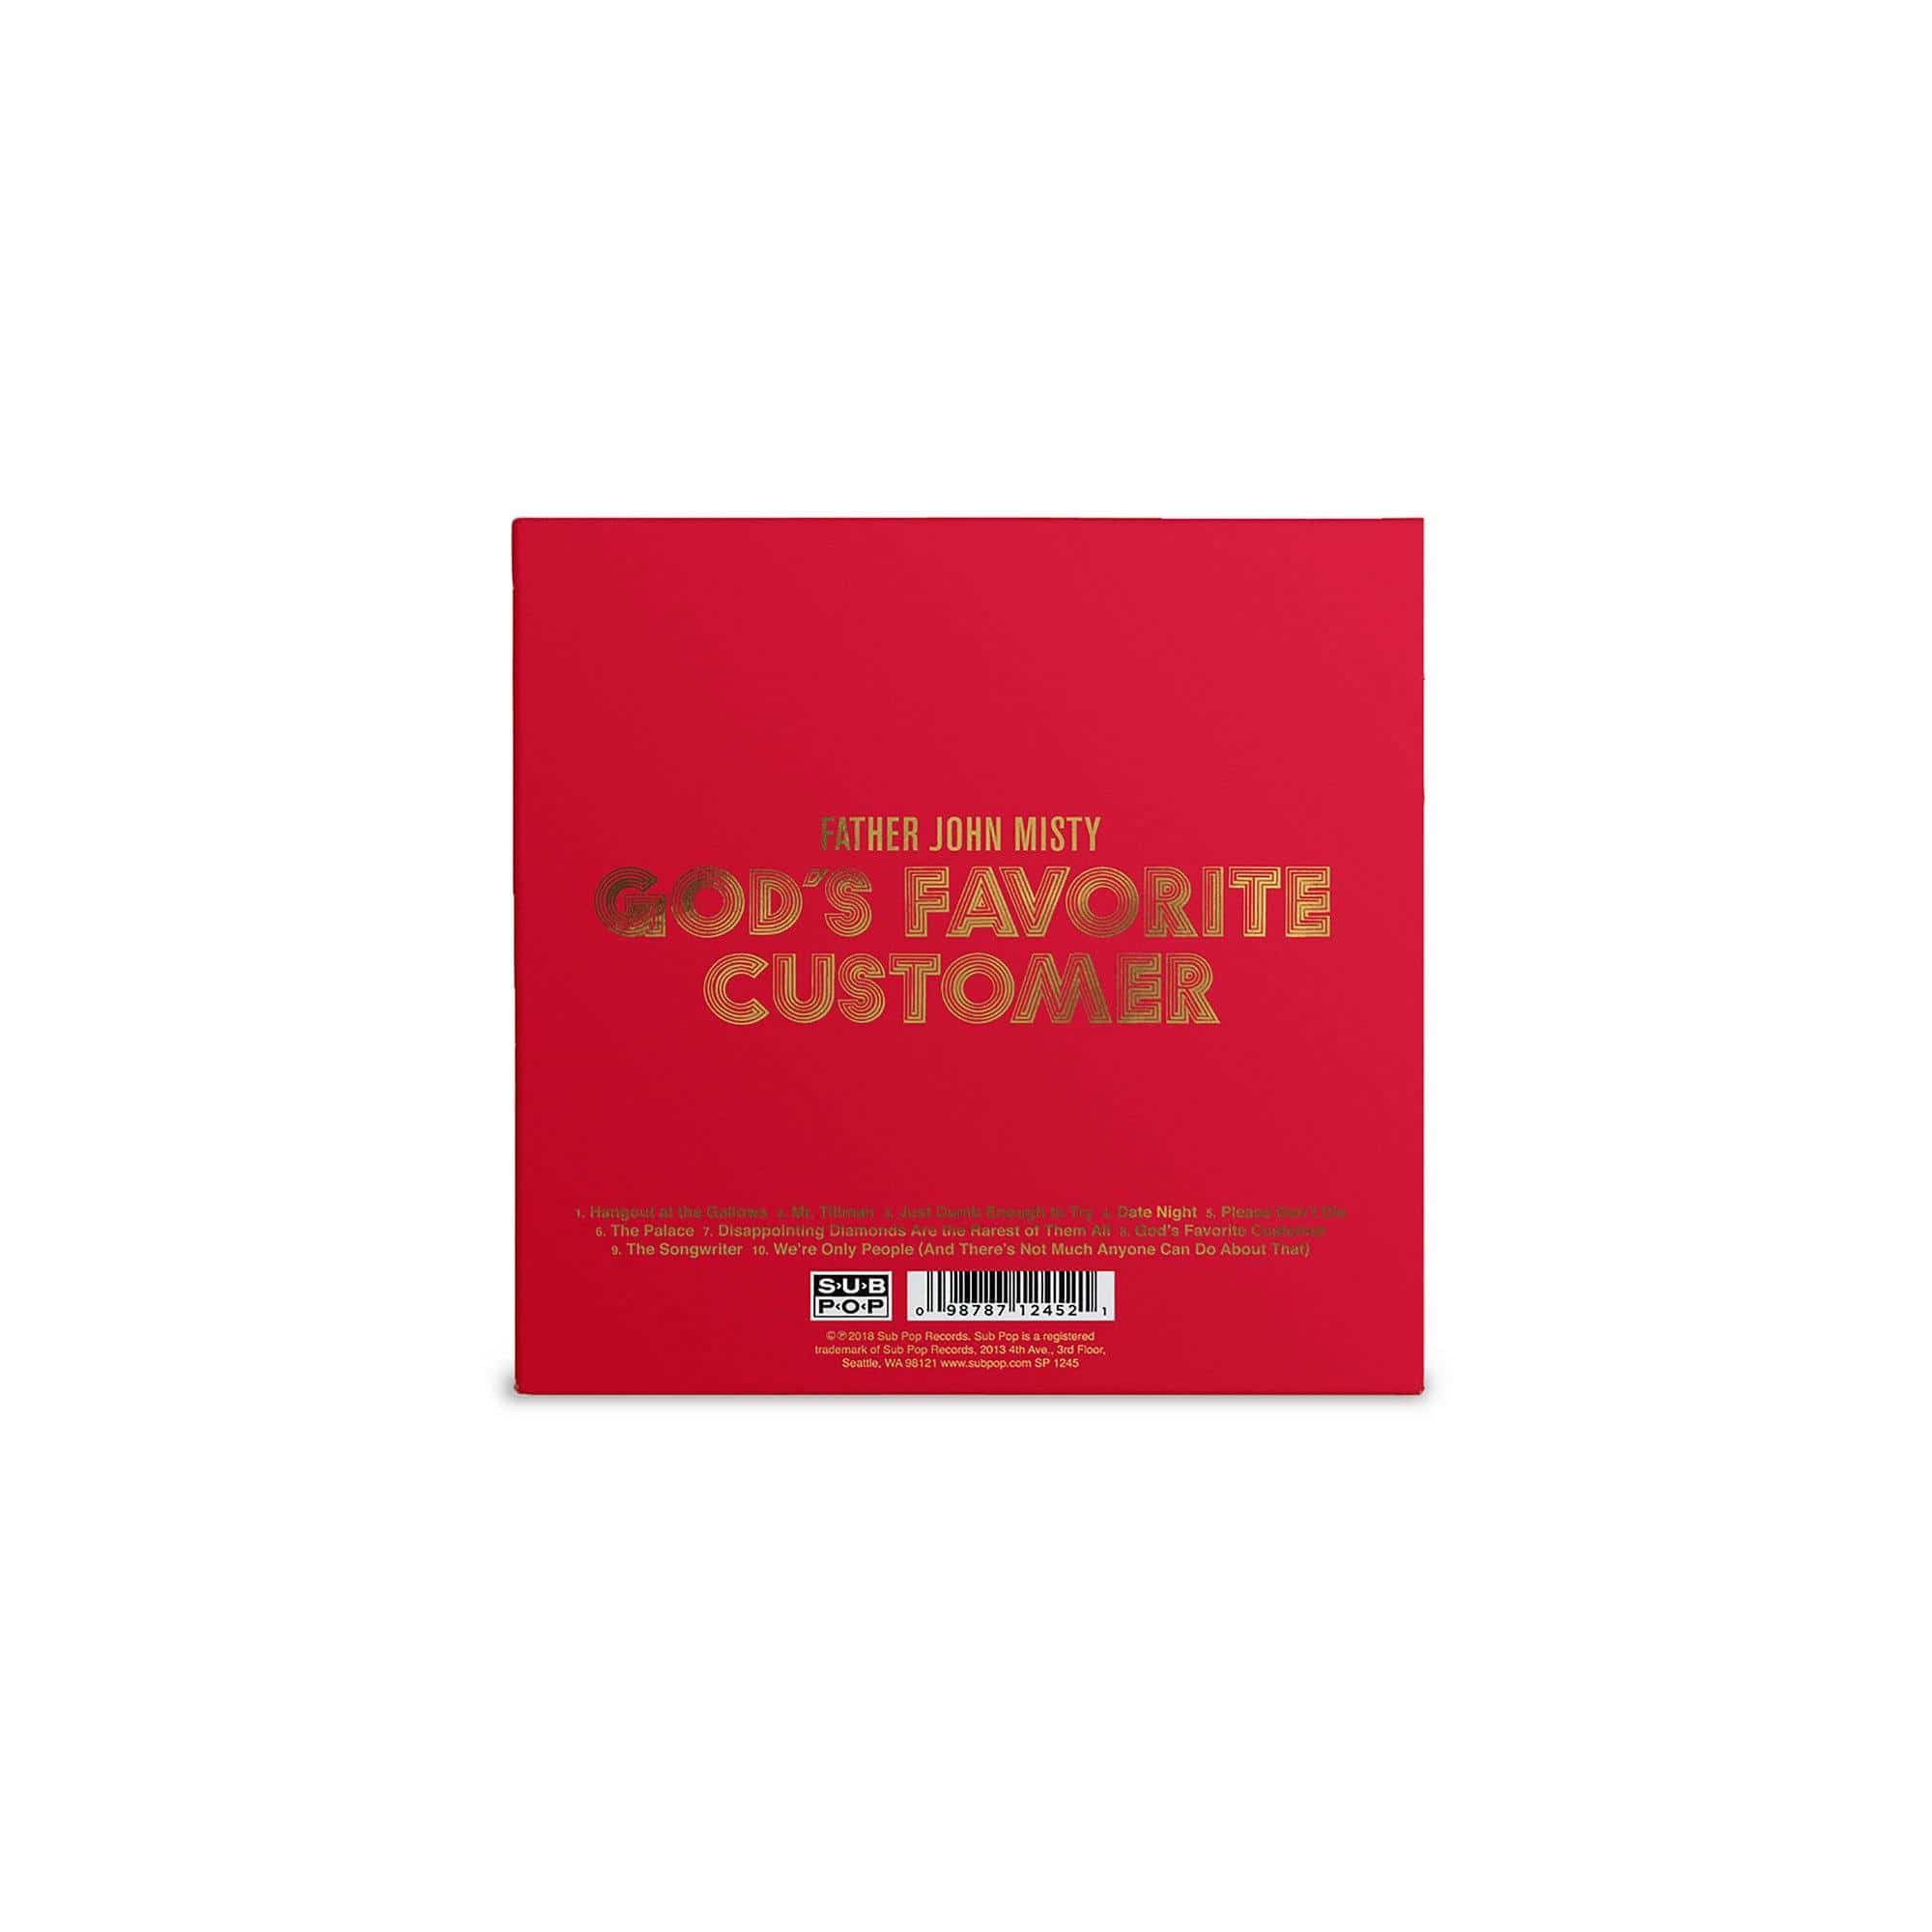 'God's Favorite Customer' CD + MP3 Download